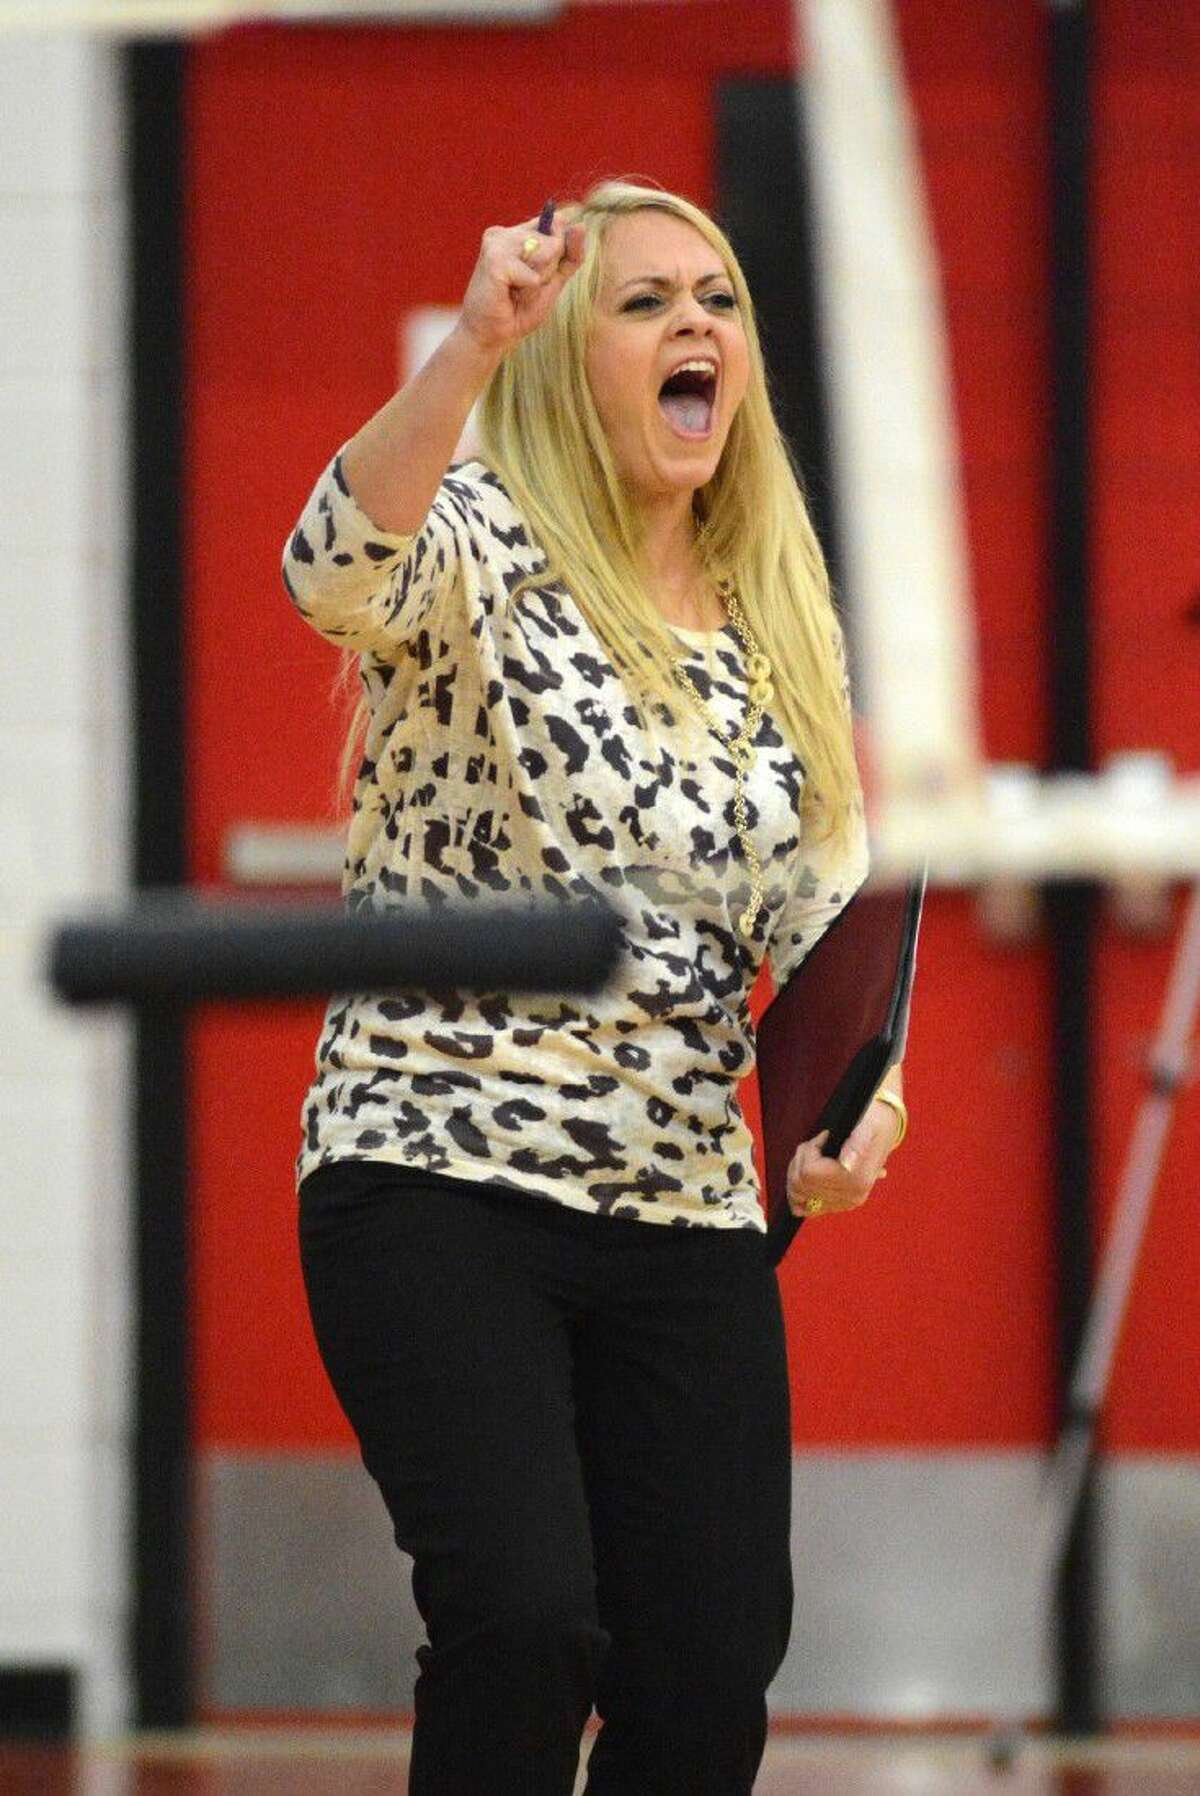 Kingwood Park volleyball coach Kelly Miser has her team rolling through district play so far this season.